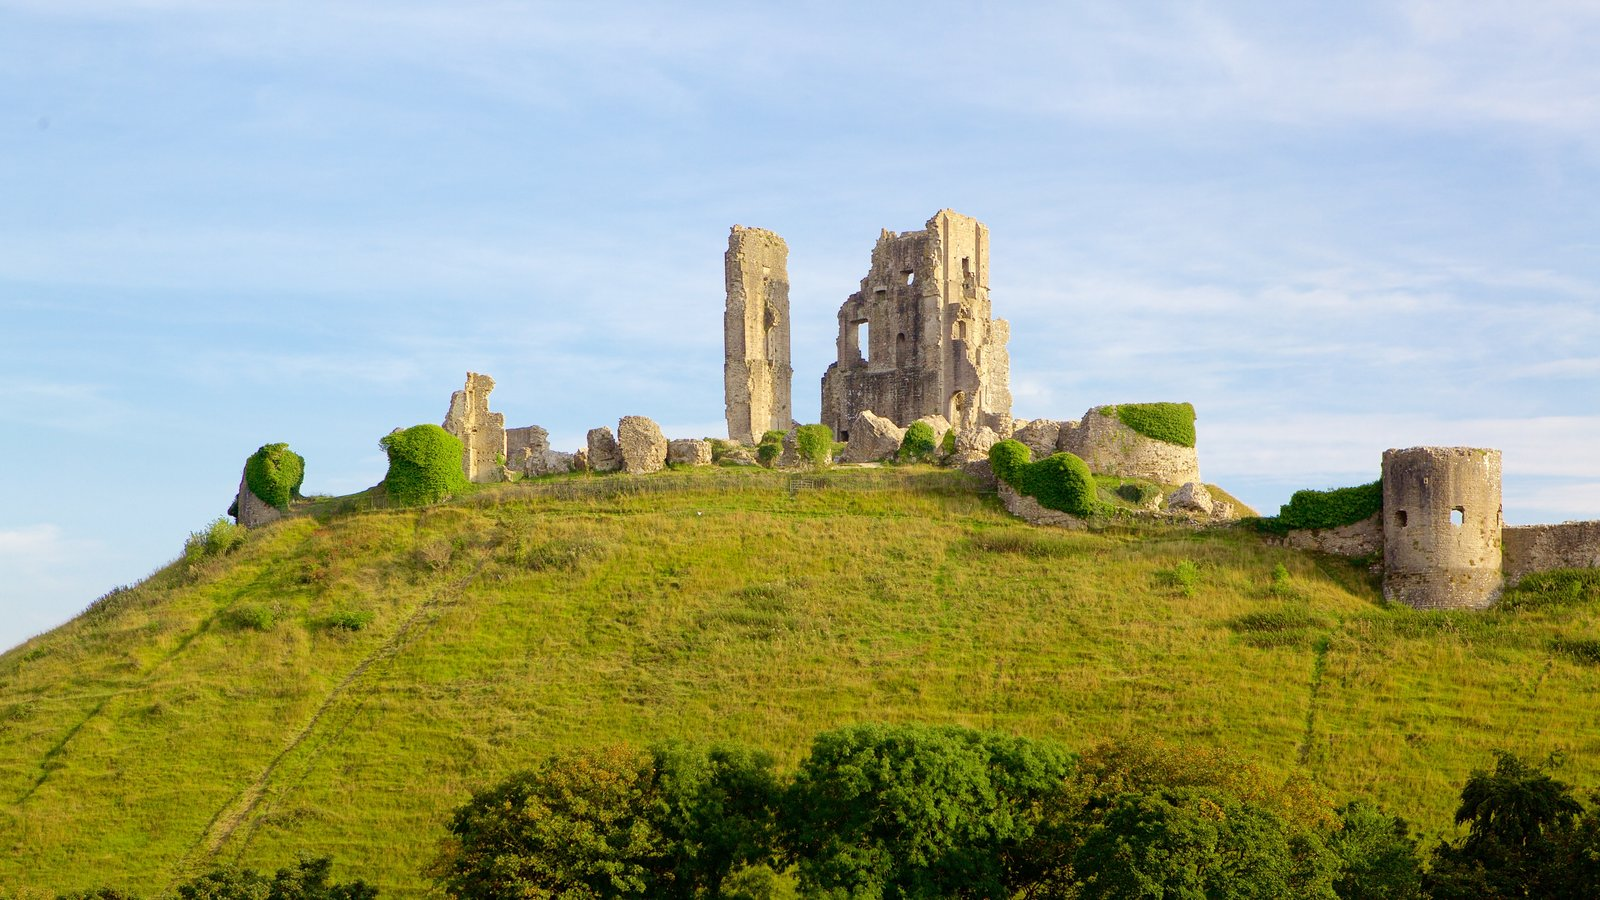 Corfe Castle which includes heritage elements, chateau or palace and building ruins